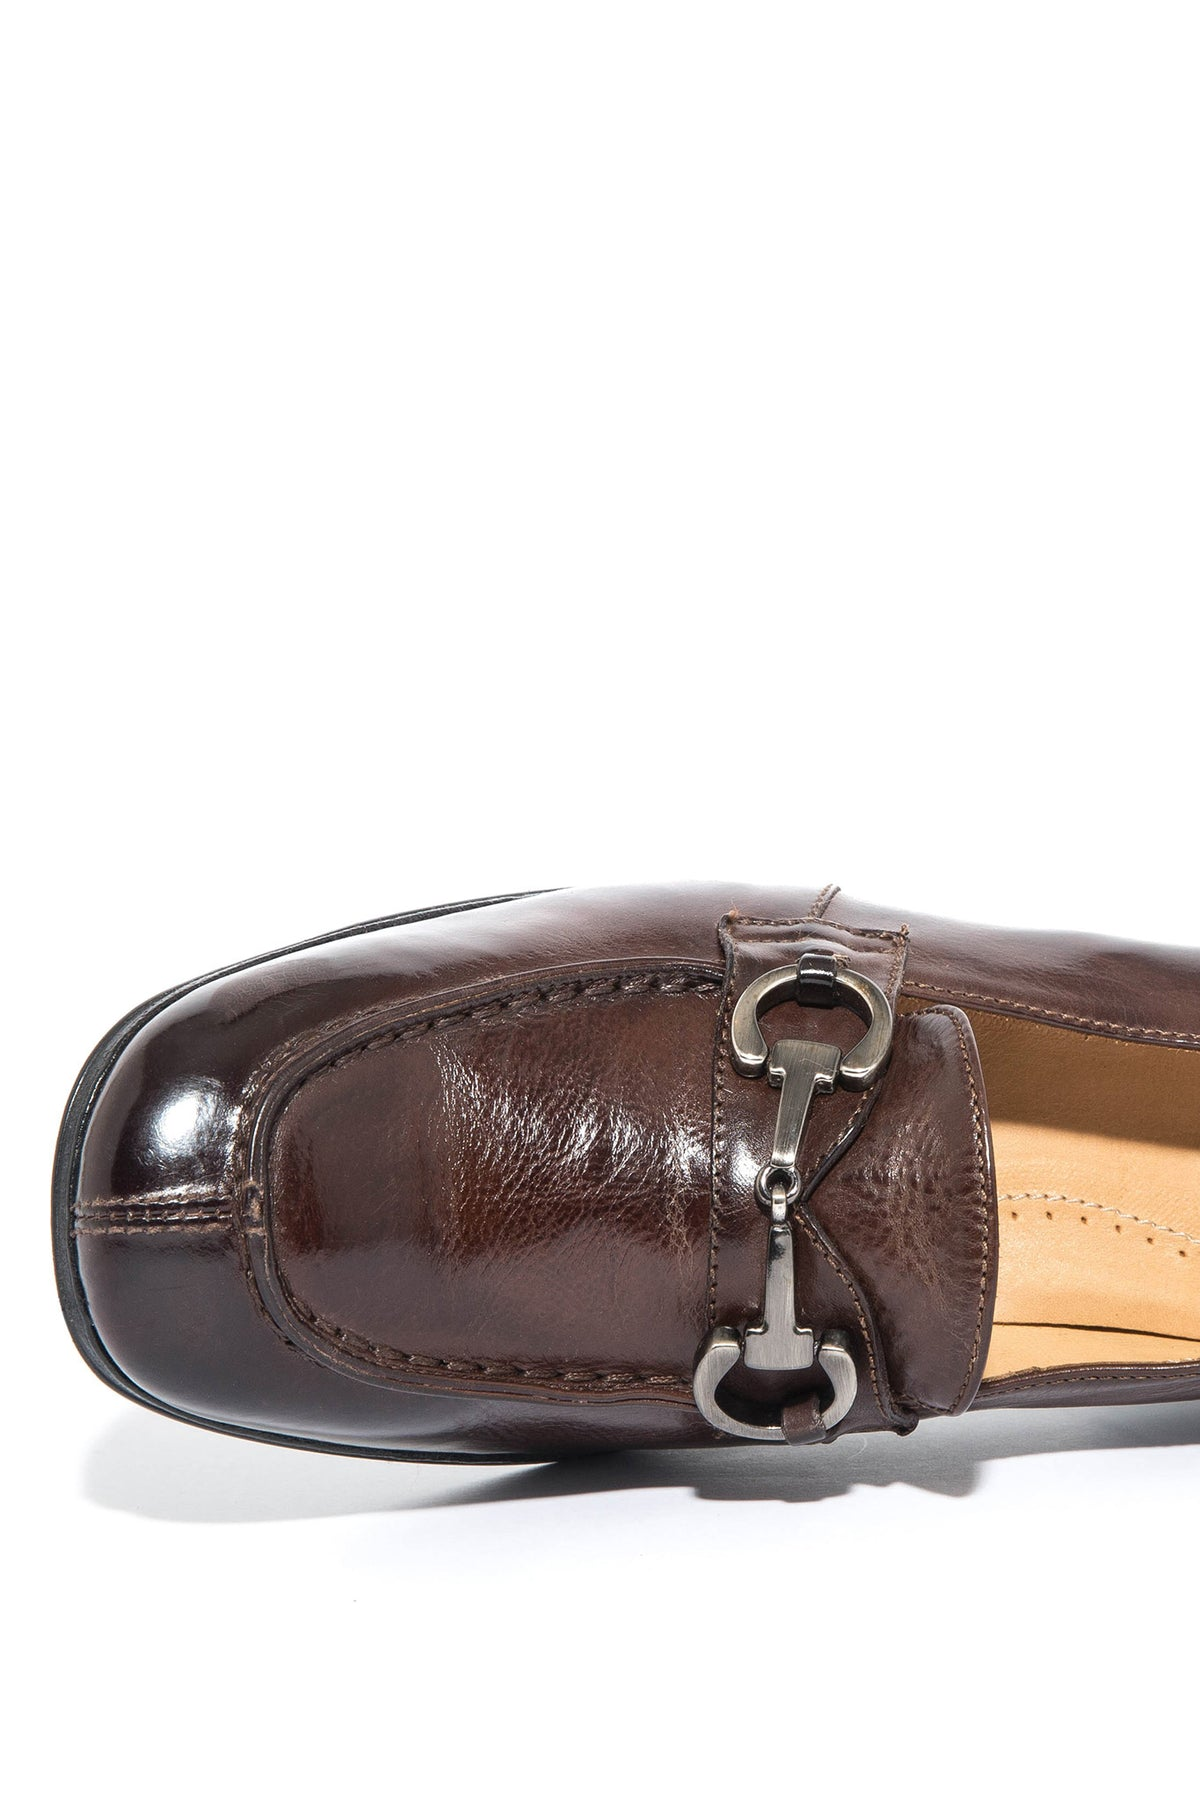 Janies High Heel Loafer In Burnished Brown (3558584483933)